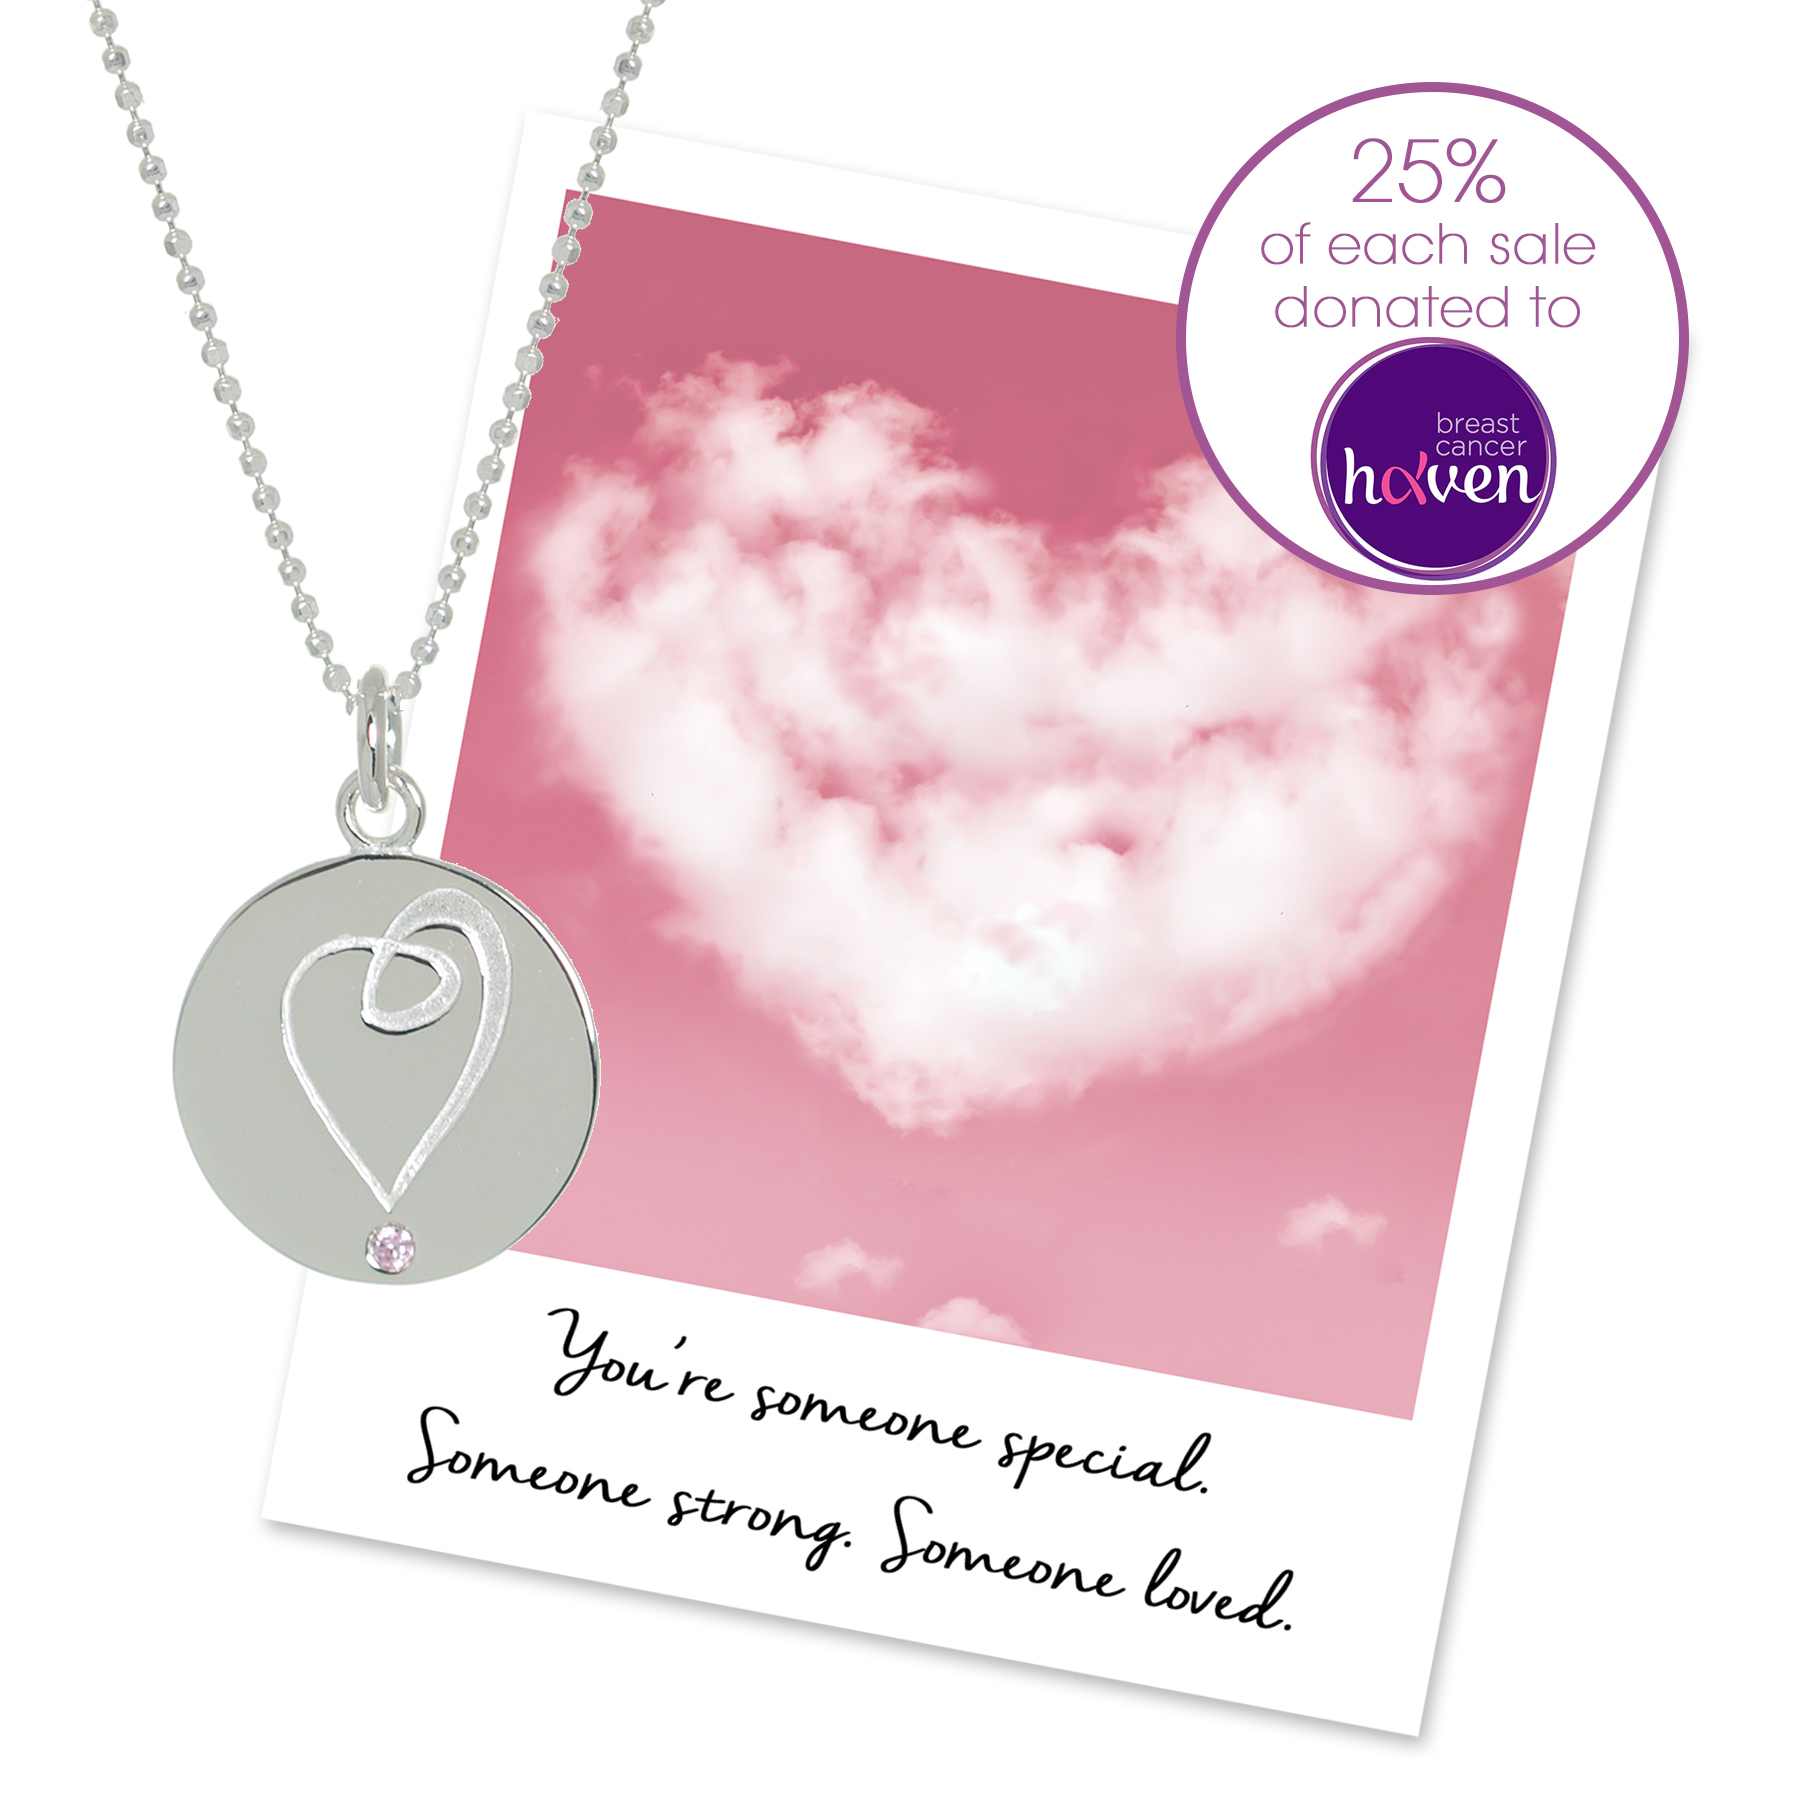 Breast Cancer Haven Charity Necklace - Mantra jewellery